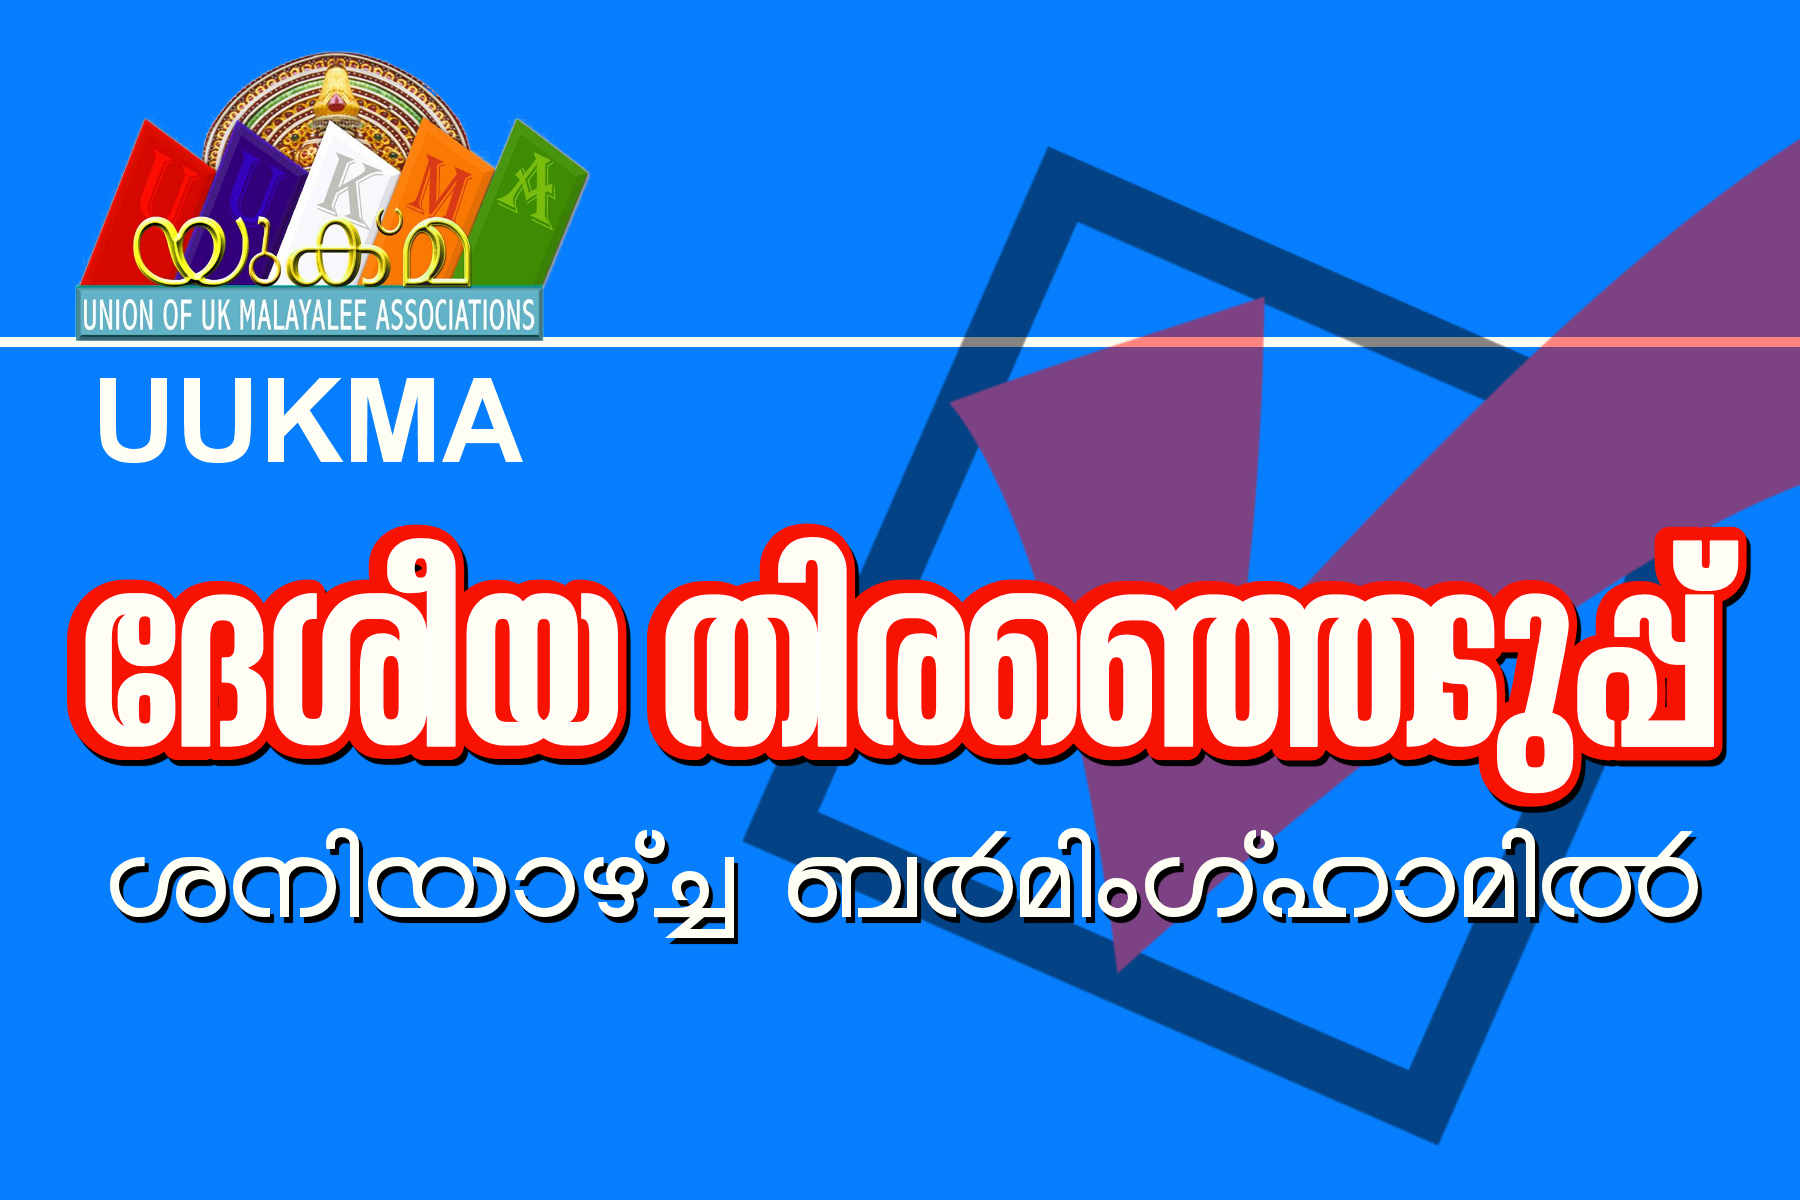 https://uukmanews.com/uukma-national-election2019/